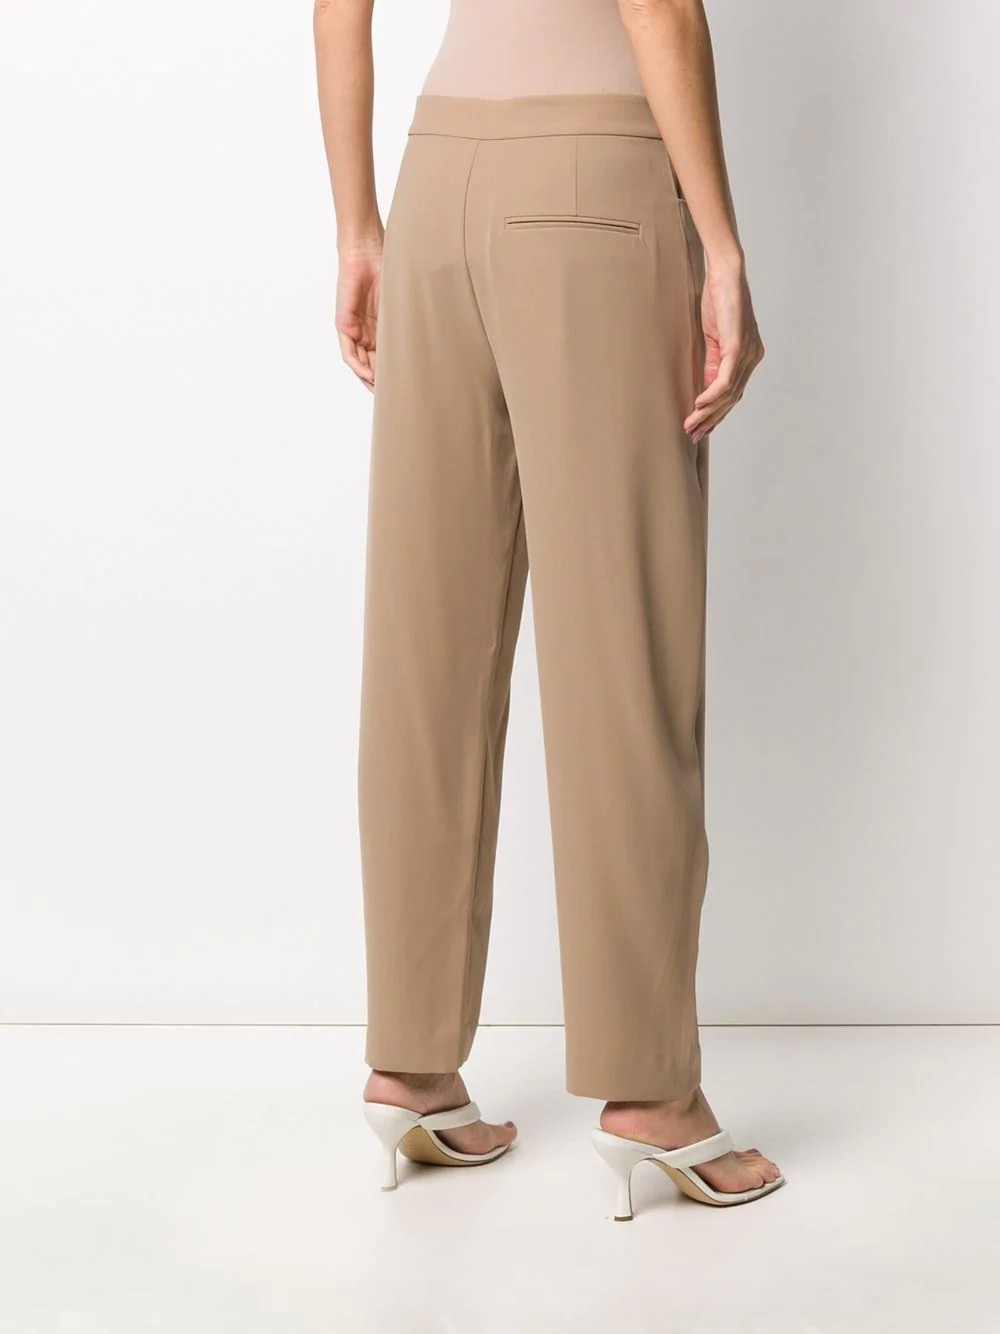 TROUSERS WITH SHAPED LEG